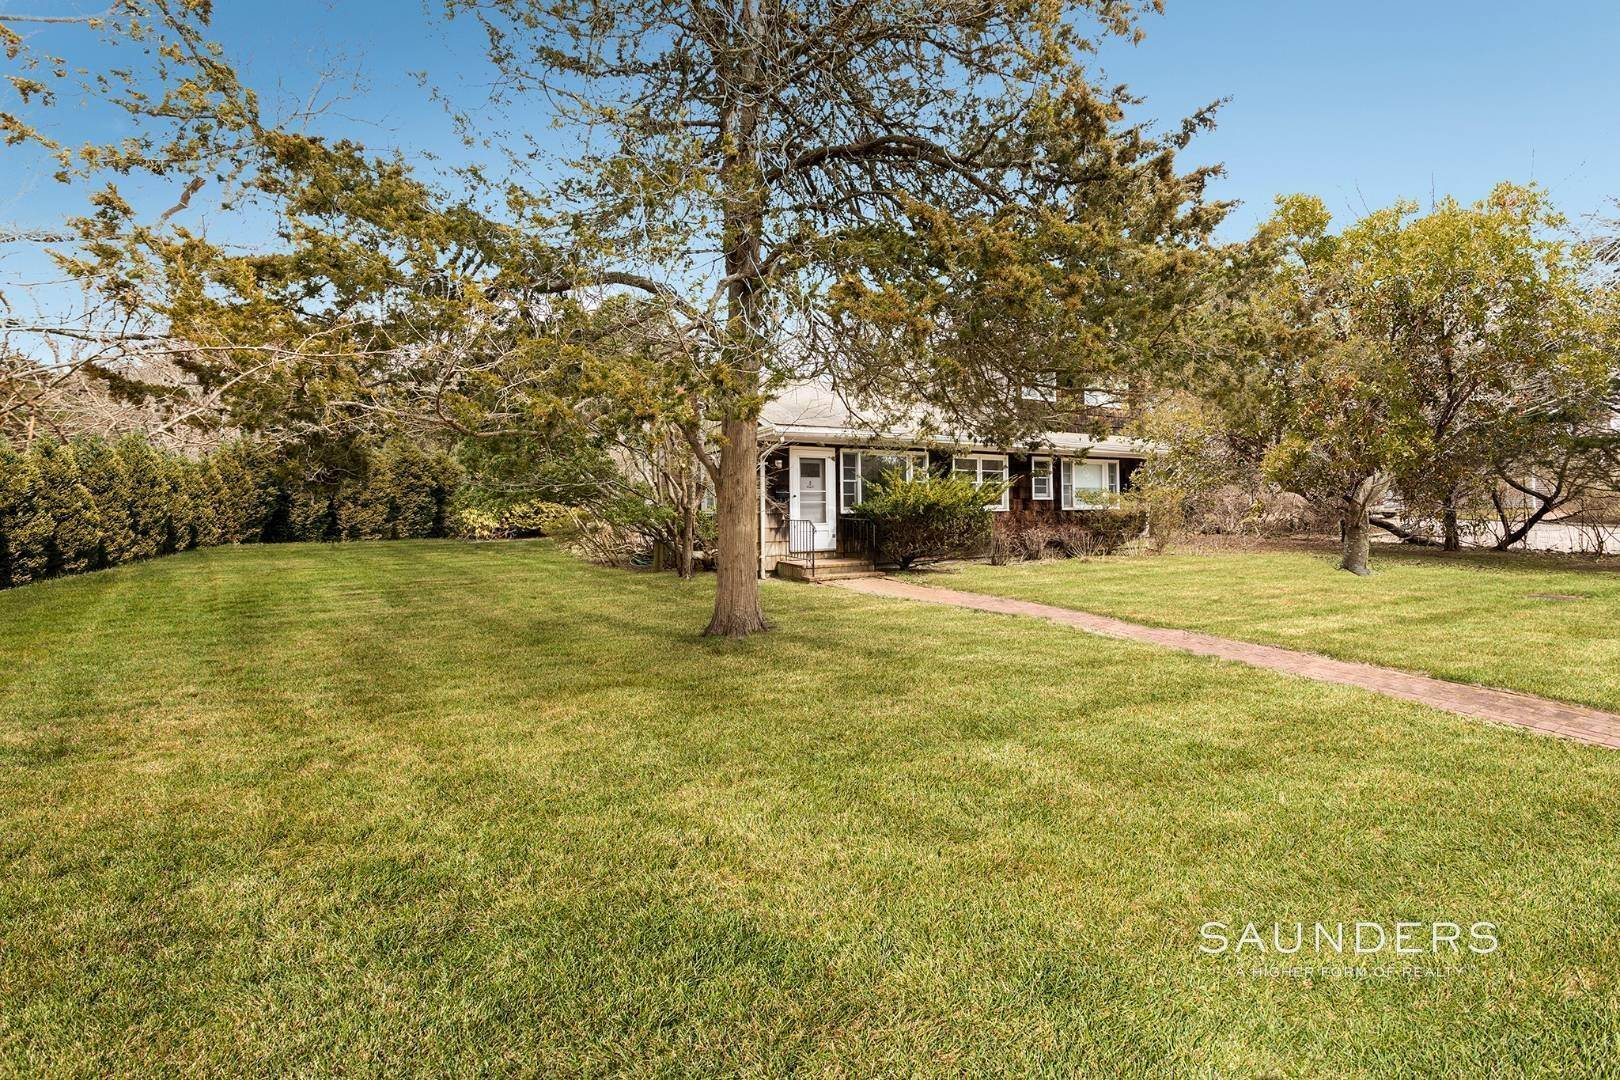 2. Single Family Homes for Sale at Amagansett Lanes Near Bluff Road 121 Hedges Lane, Amagansett, East Hampton Town, NY 11930